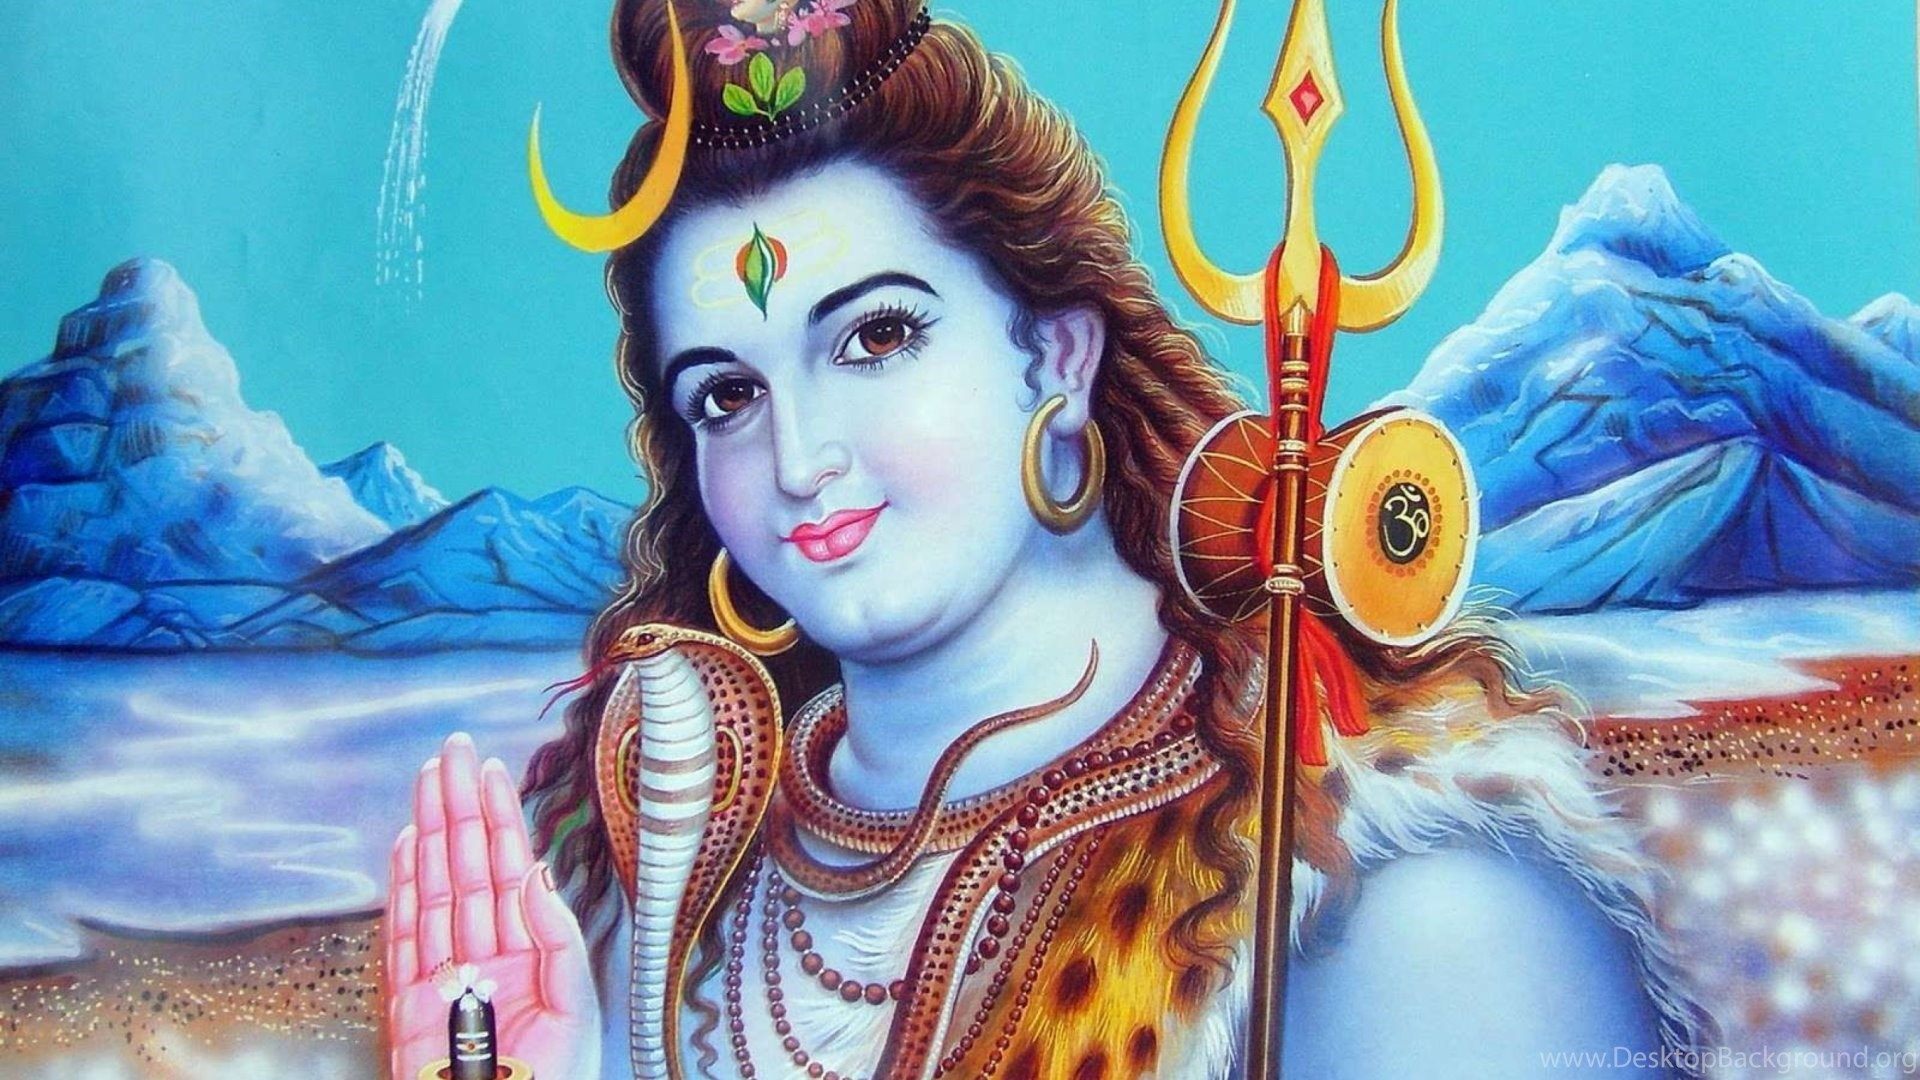 Lord Shiva Wallpapers Hd Free Download For Desktop: Lord Shiva God Wallpapers For Desktop 1920x1080 Full HD